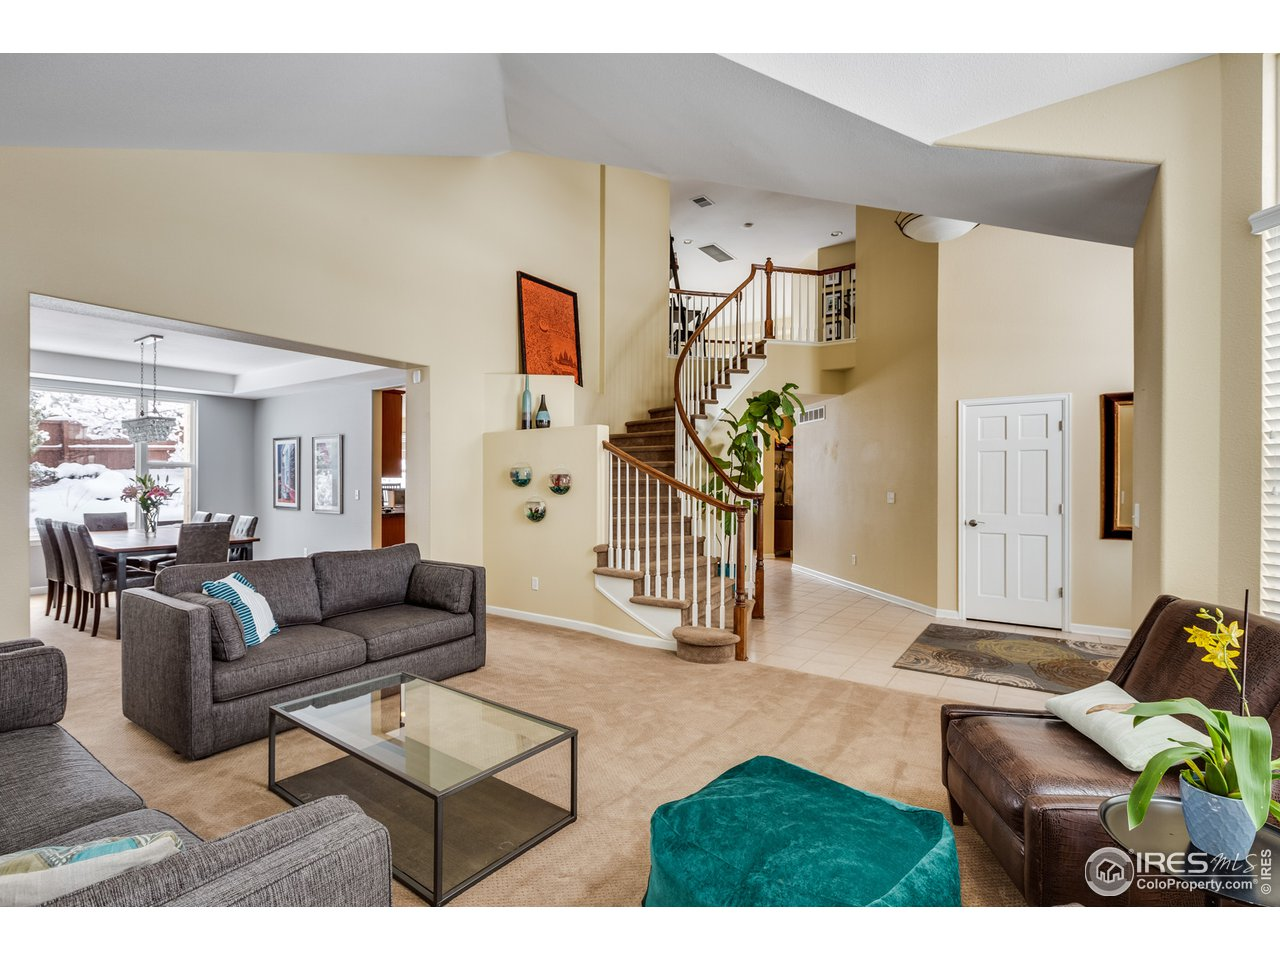 Living room opens to foyer